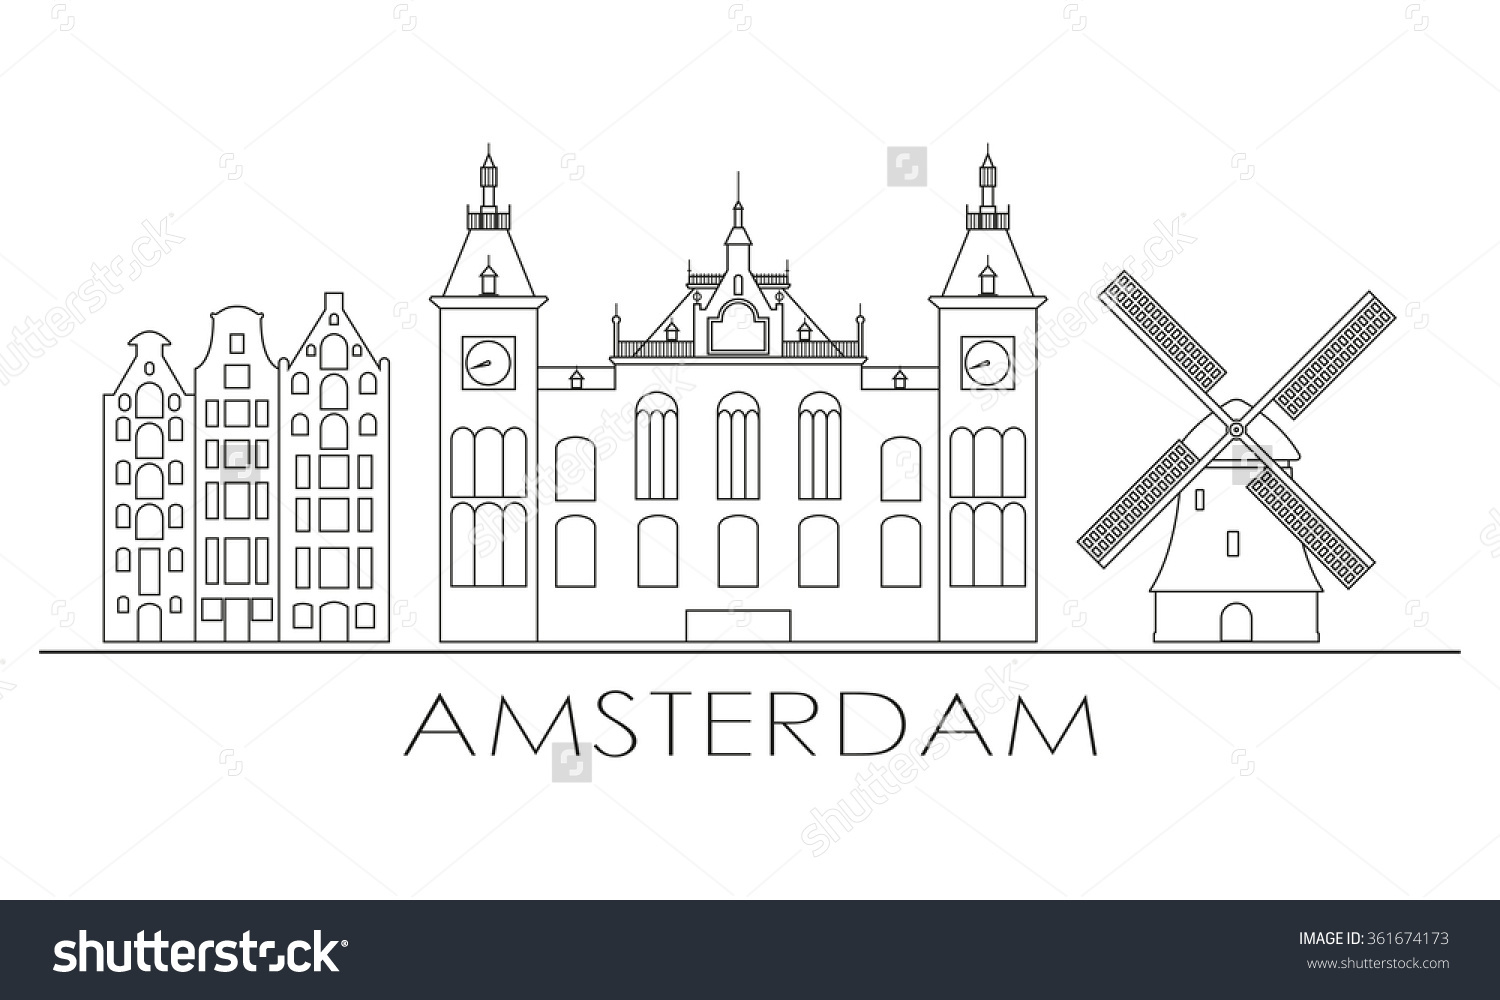 Amsterdam City Skyline Design Amsterdam Outline Stock Vector.